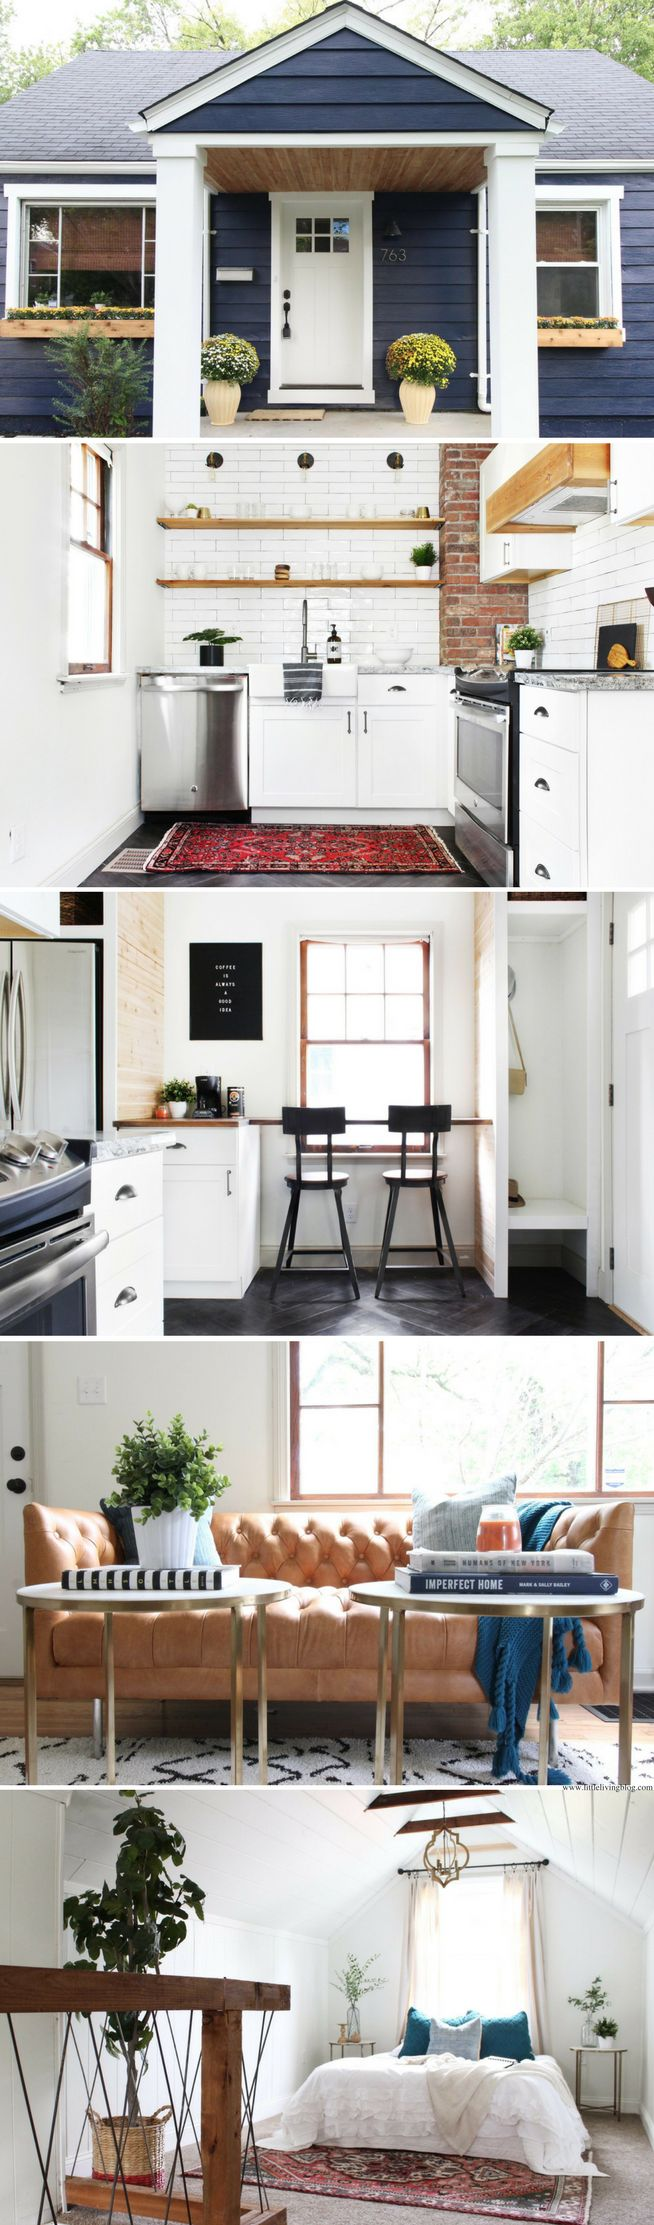 Interior design ideas for very small homes - The Chesterfield Cottage Sq Ft Super Cute Love The Exterior Color And The Layout Is Fantastic Omg I Want A Tiny House So Much